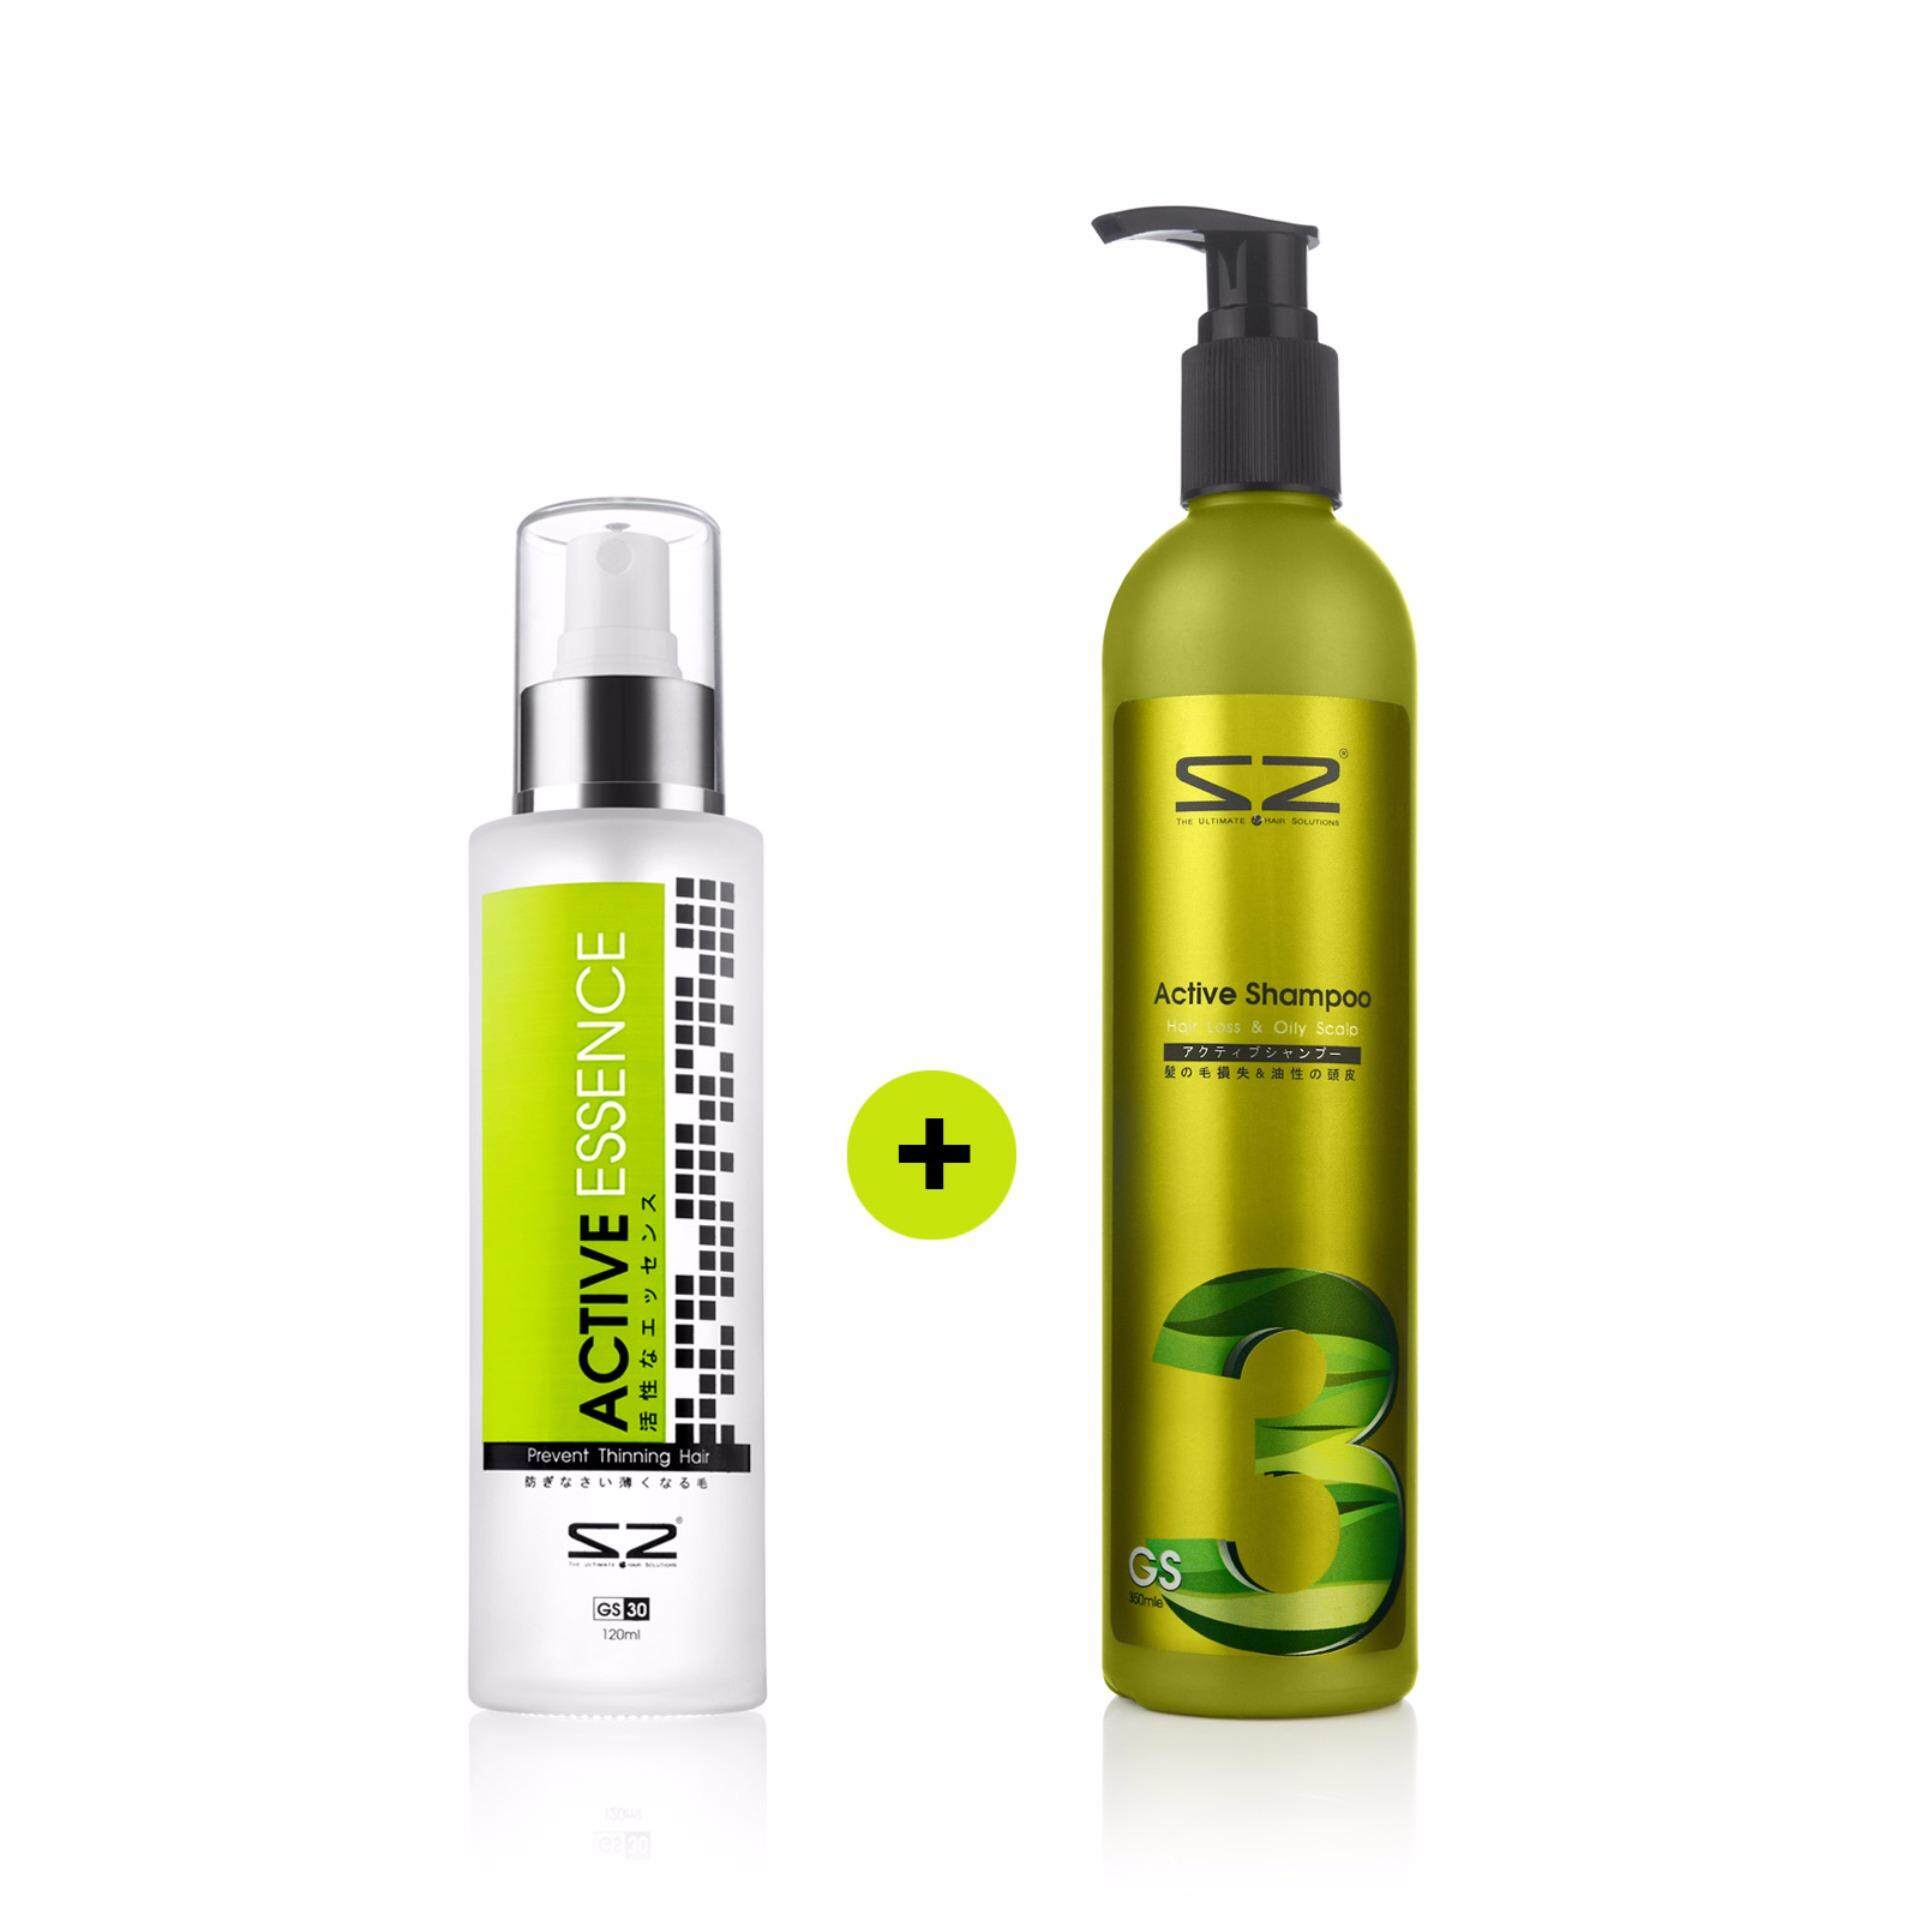 S2 GS30 Active Essence - 120ml + S2 GS3 Active Shampoo (350ml)